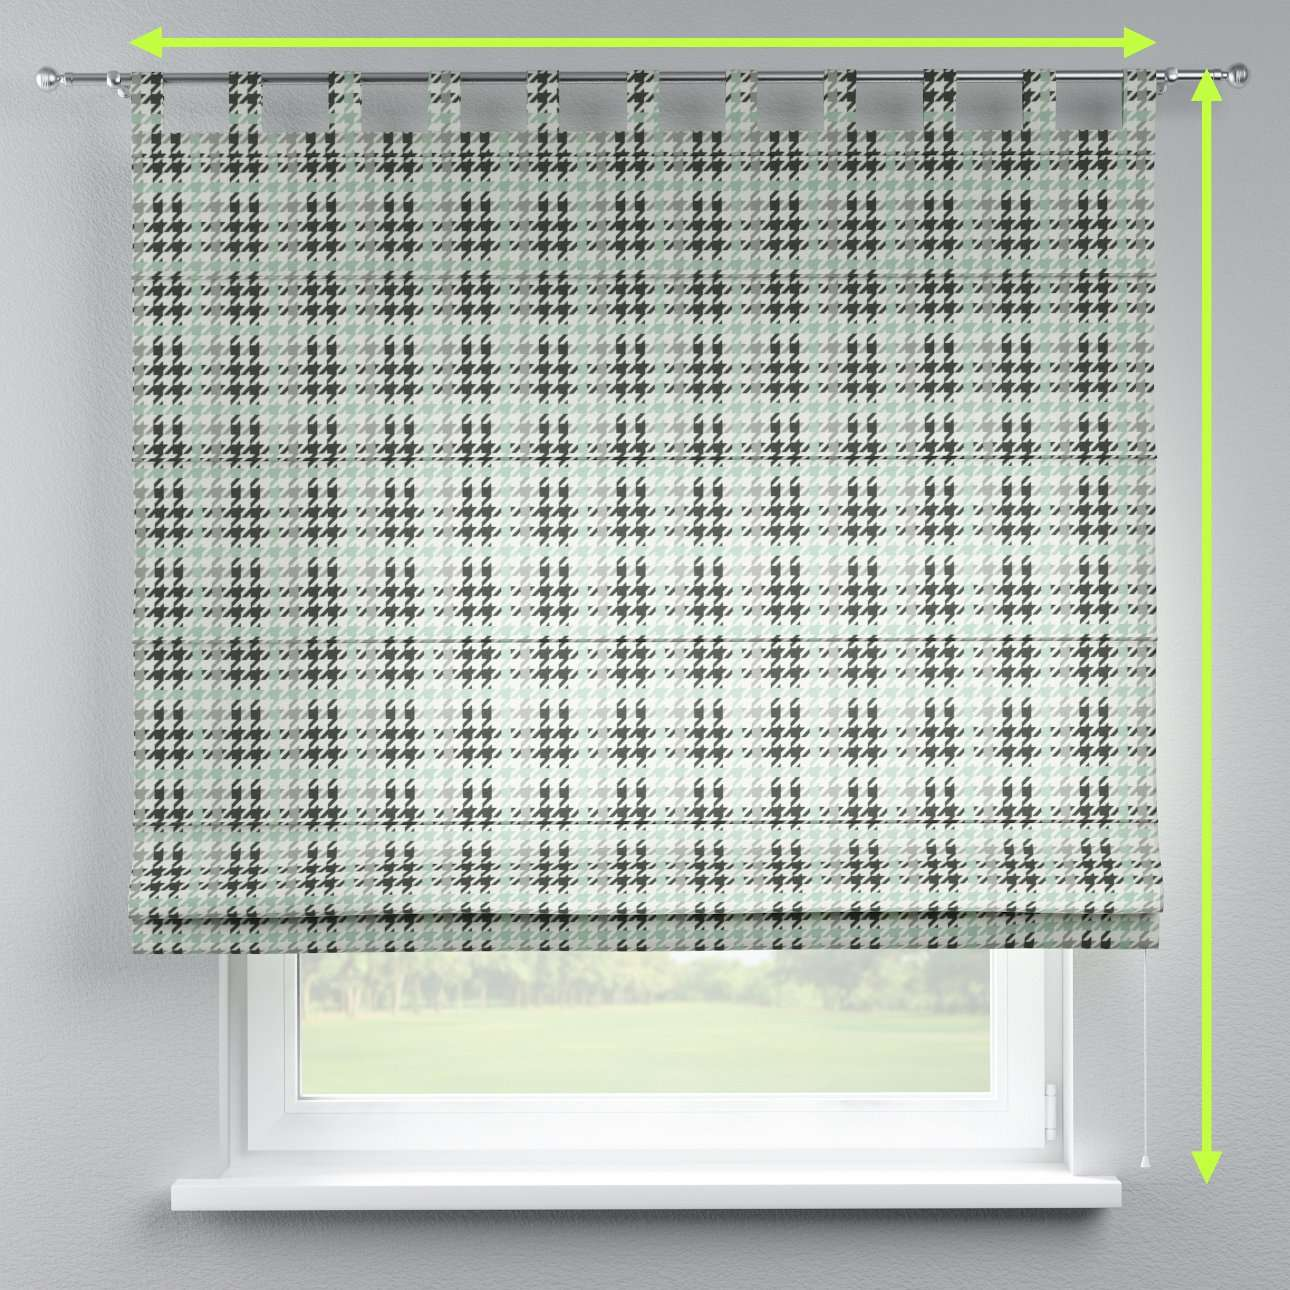 Verona tab top roman blind in collection Brooklyn, fabric: 137-77